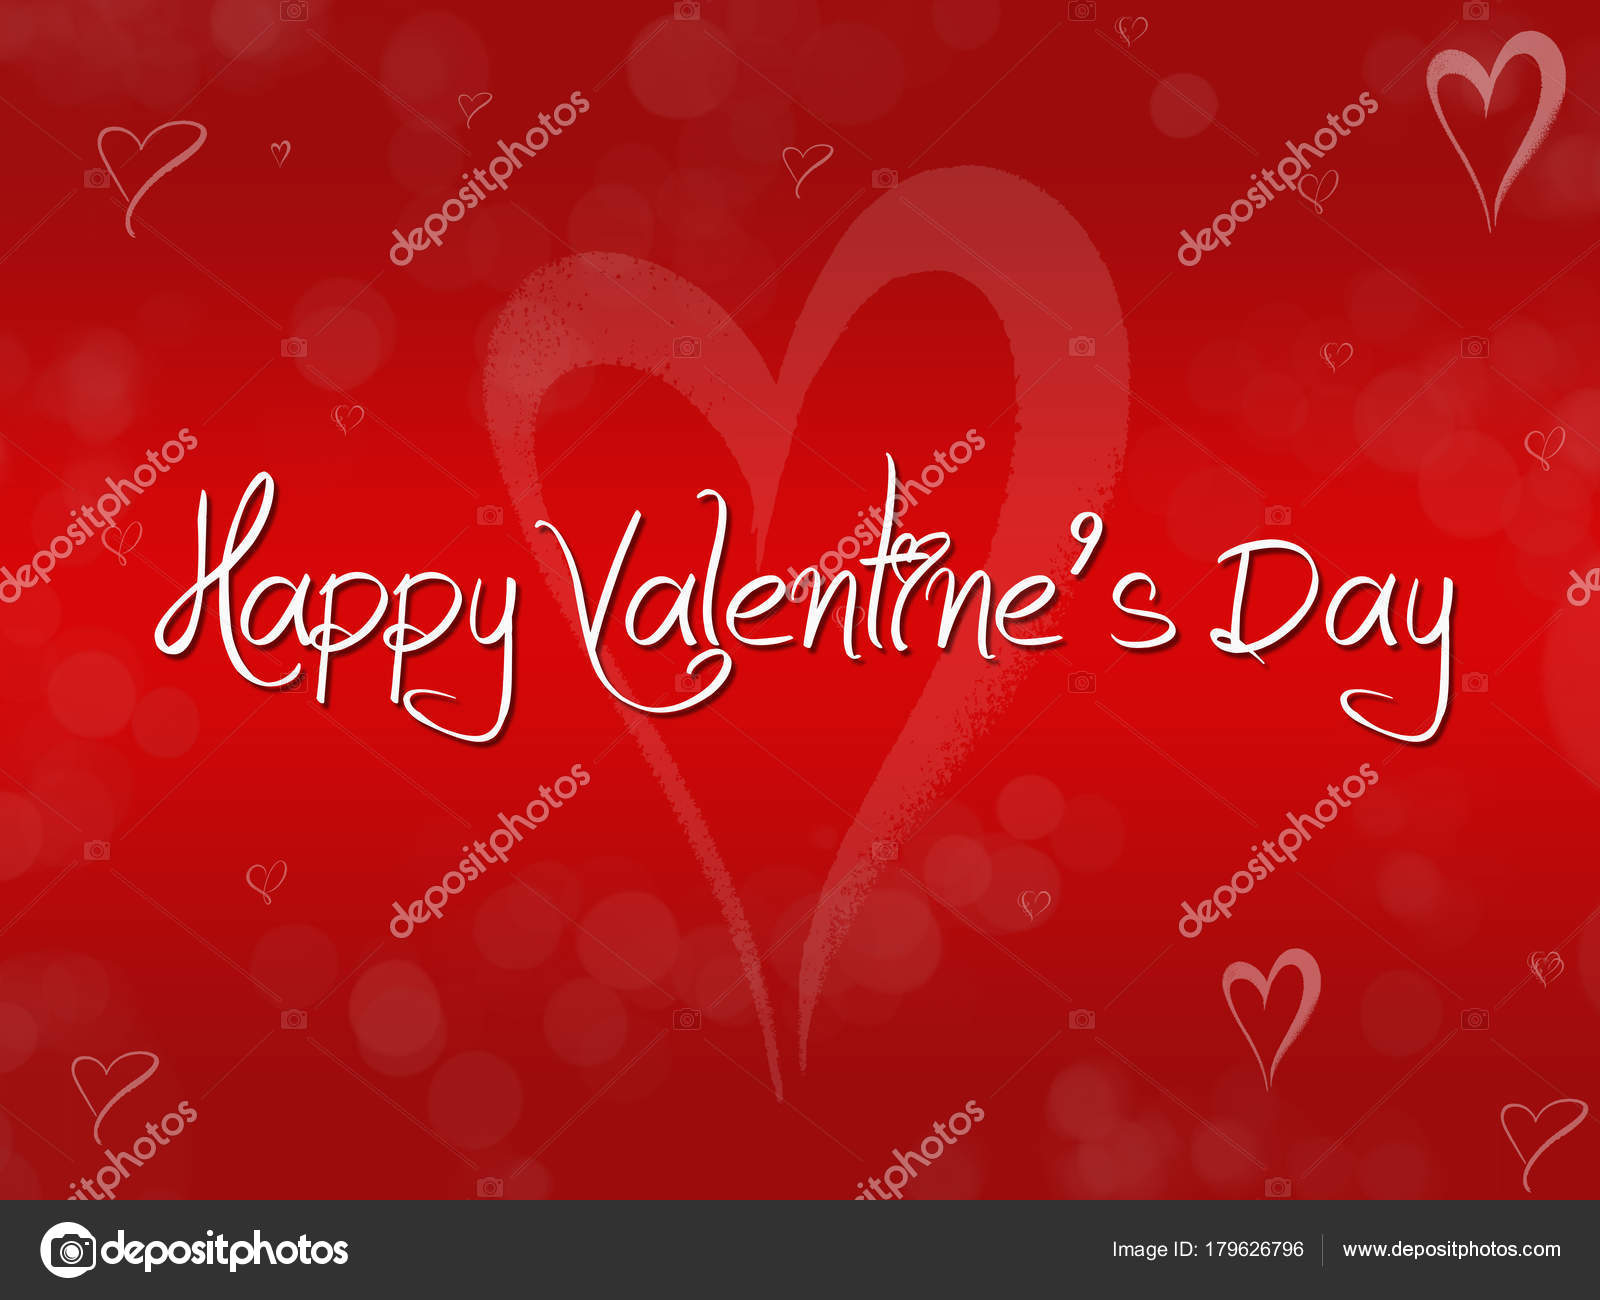 Valentine day greeting card message happy valentines day stock valentine day greeting card message happy valentines day stock photo m4hsunfo